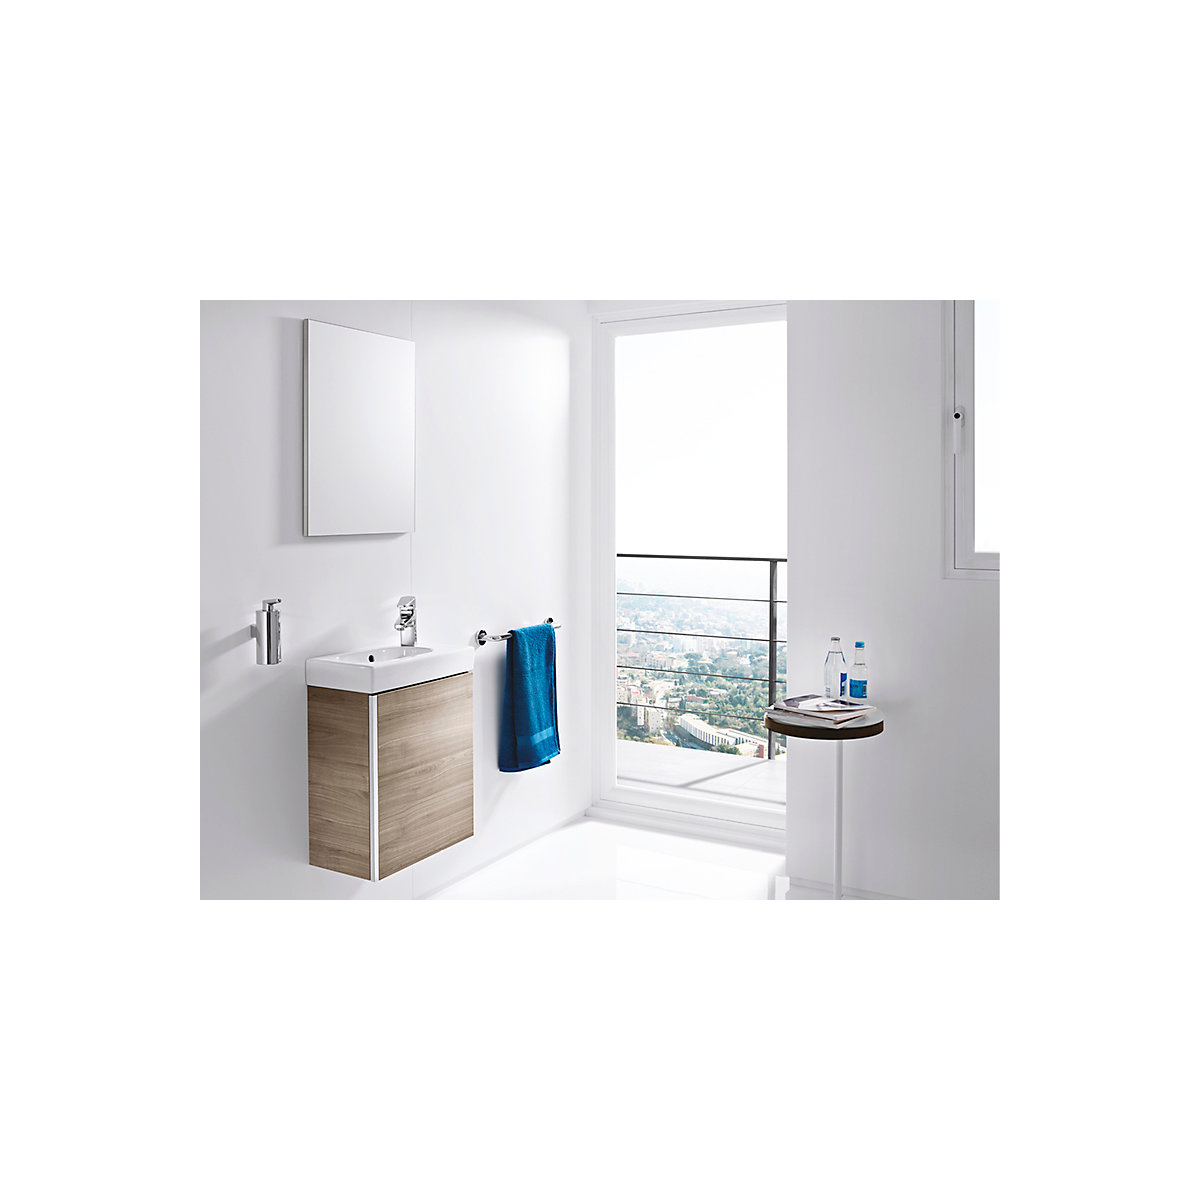 Roca Mini Furniture Suite Set | Travis Perkins